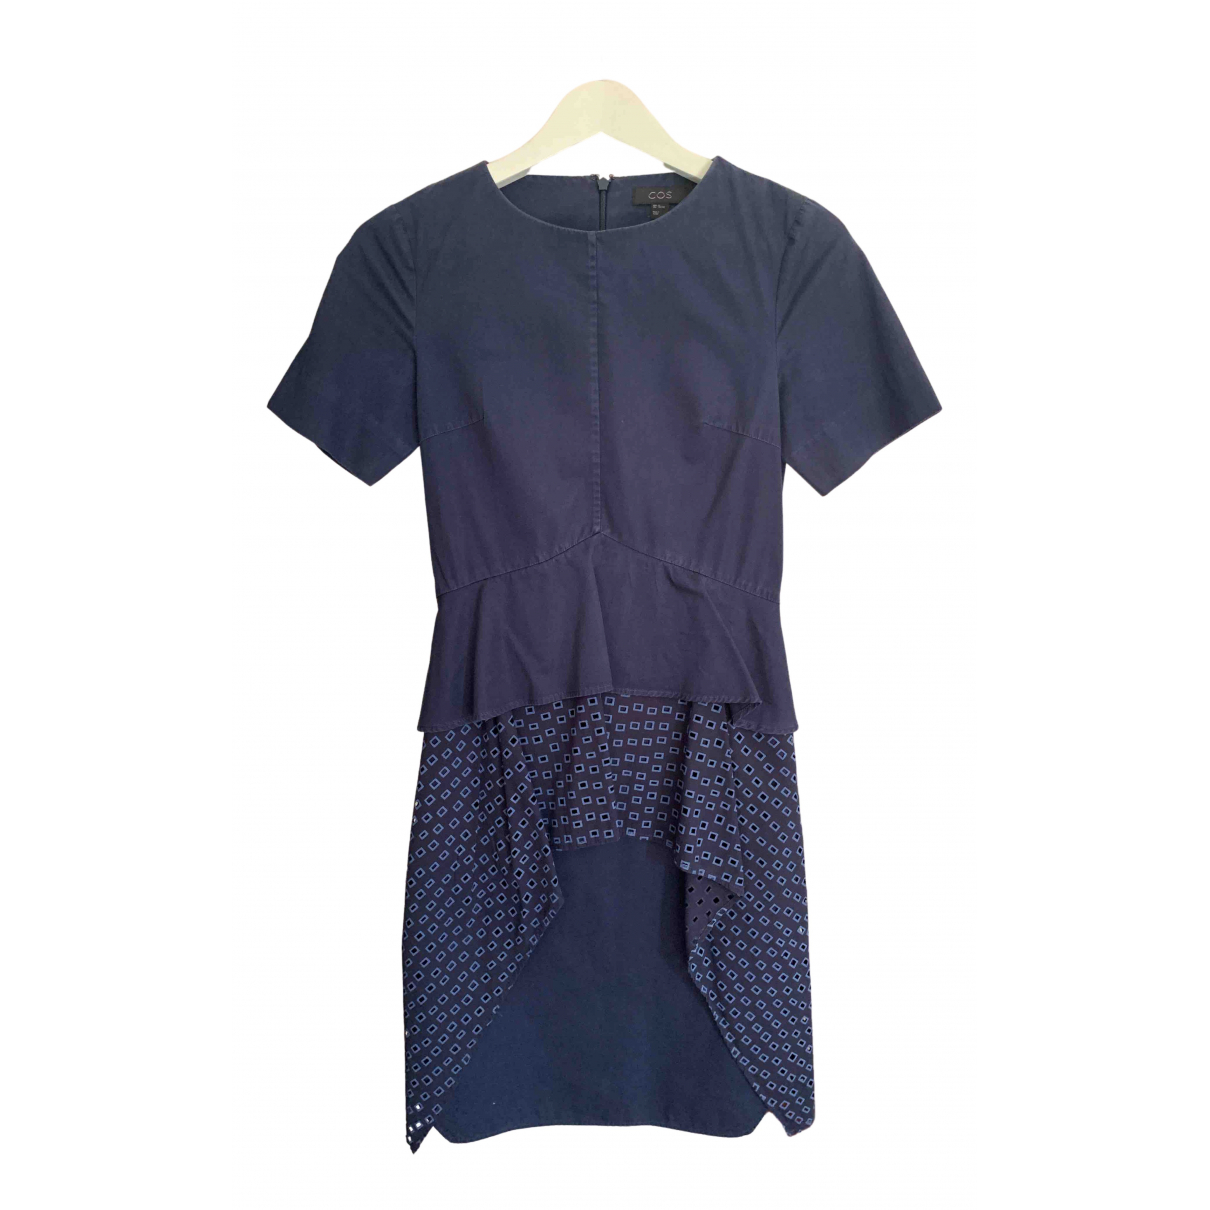 Cos \N Navy Cotton dress for Women 32 FR